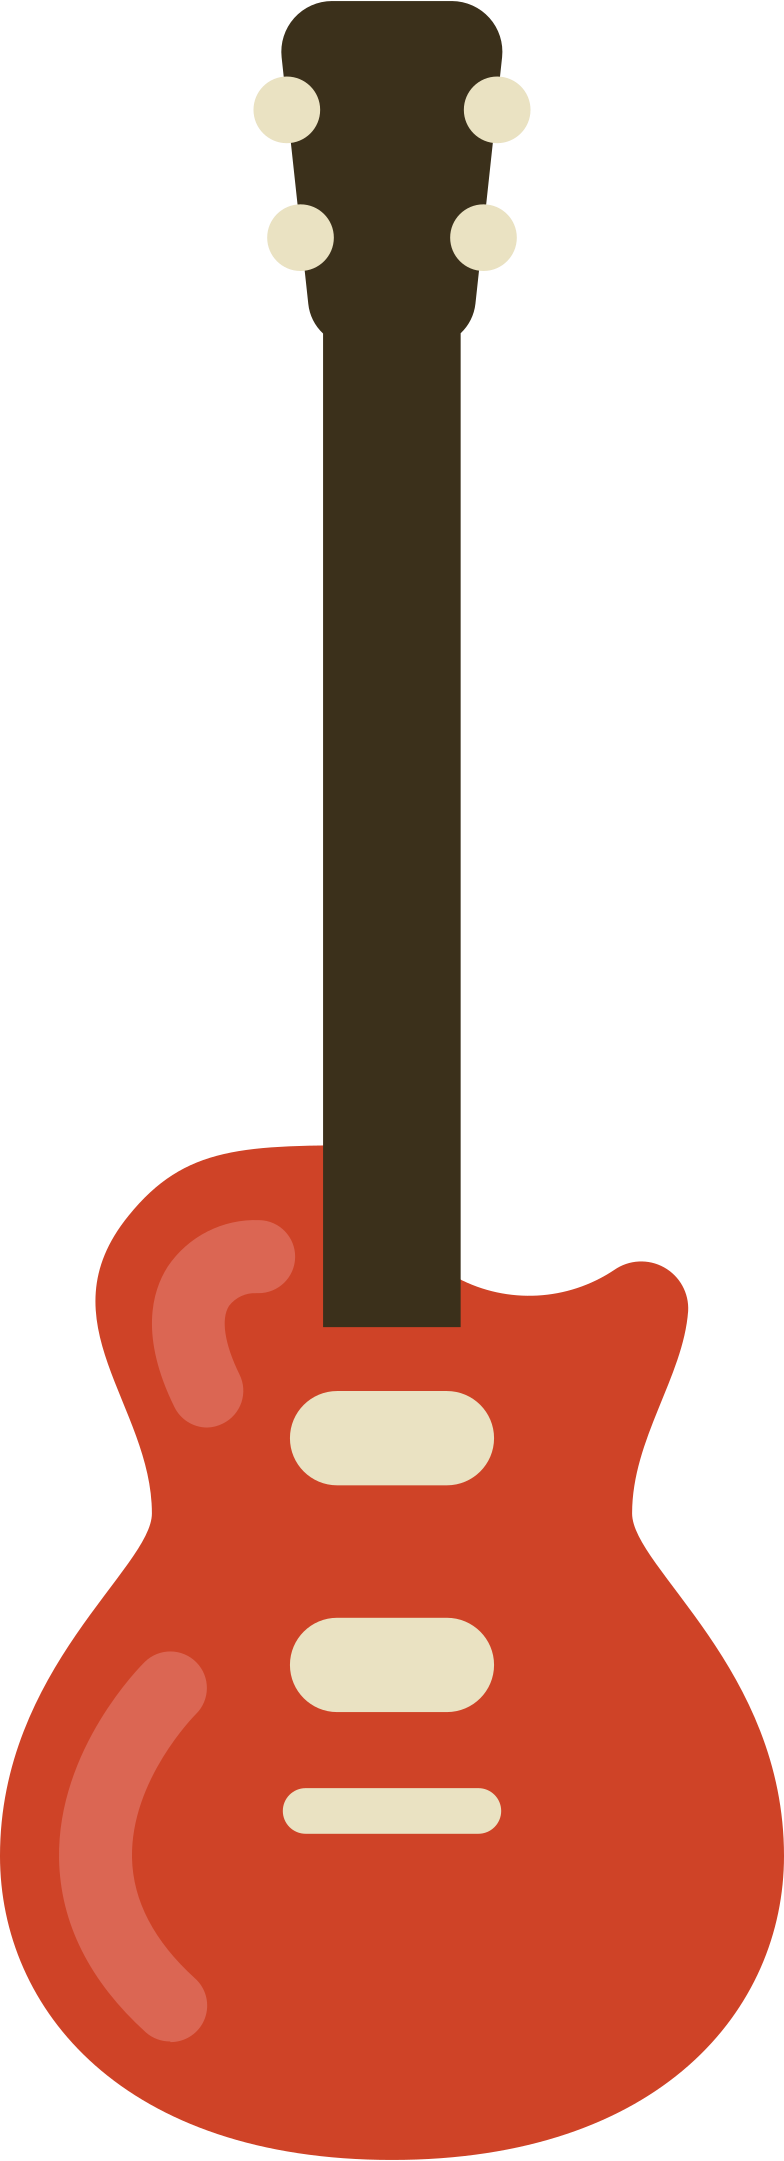 style guitar electric Vector images in PNG and SVG | Icons8 Illustrations